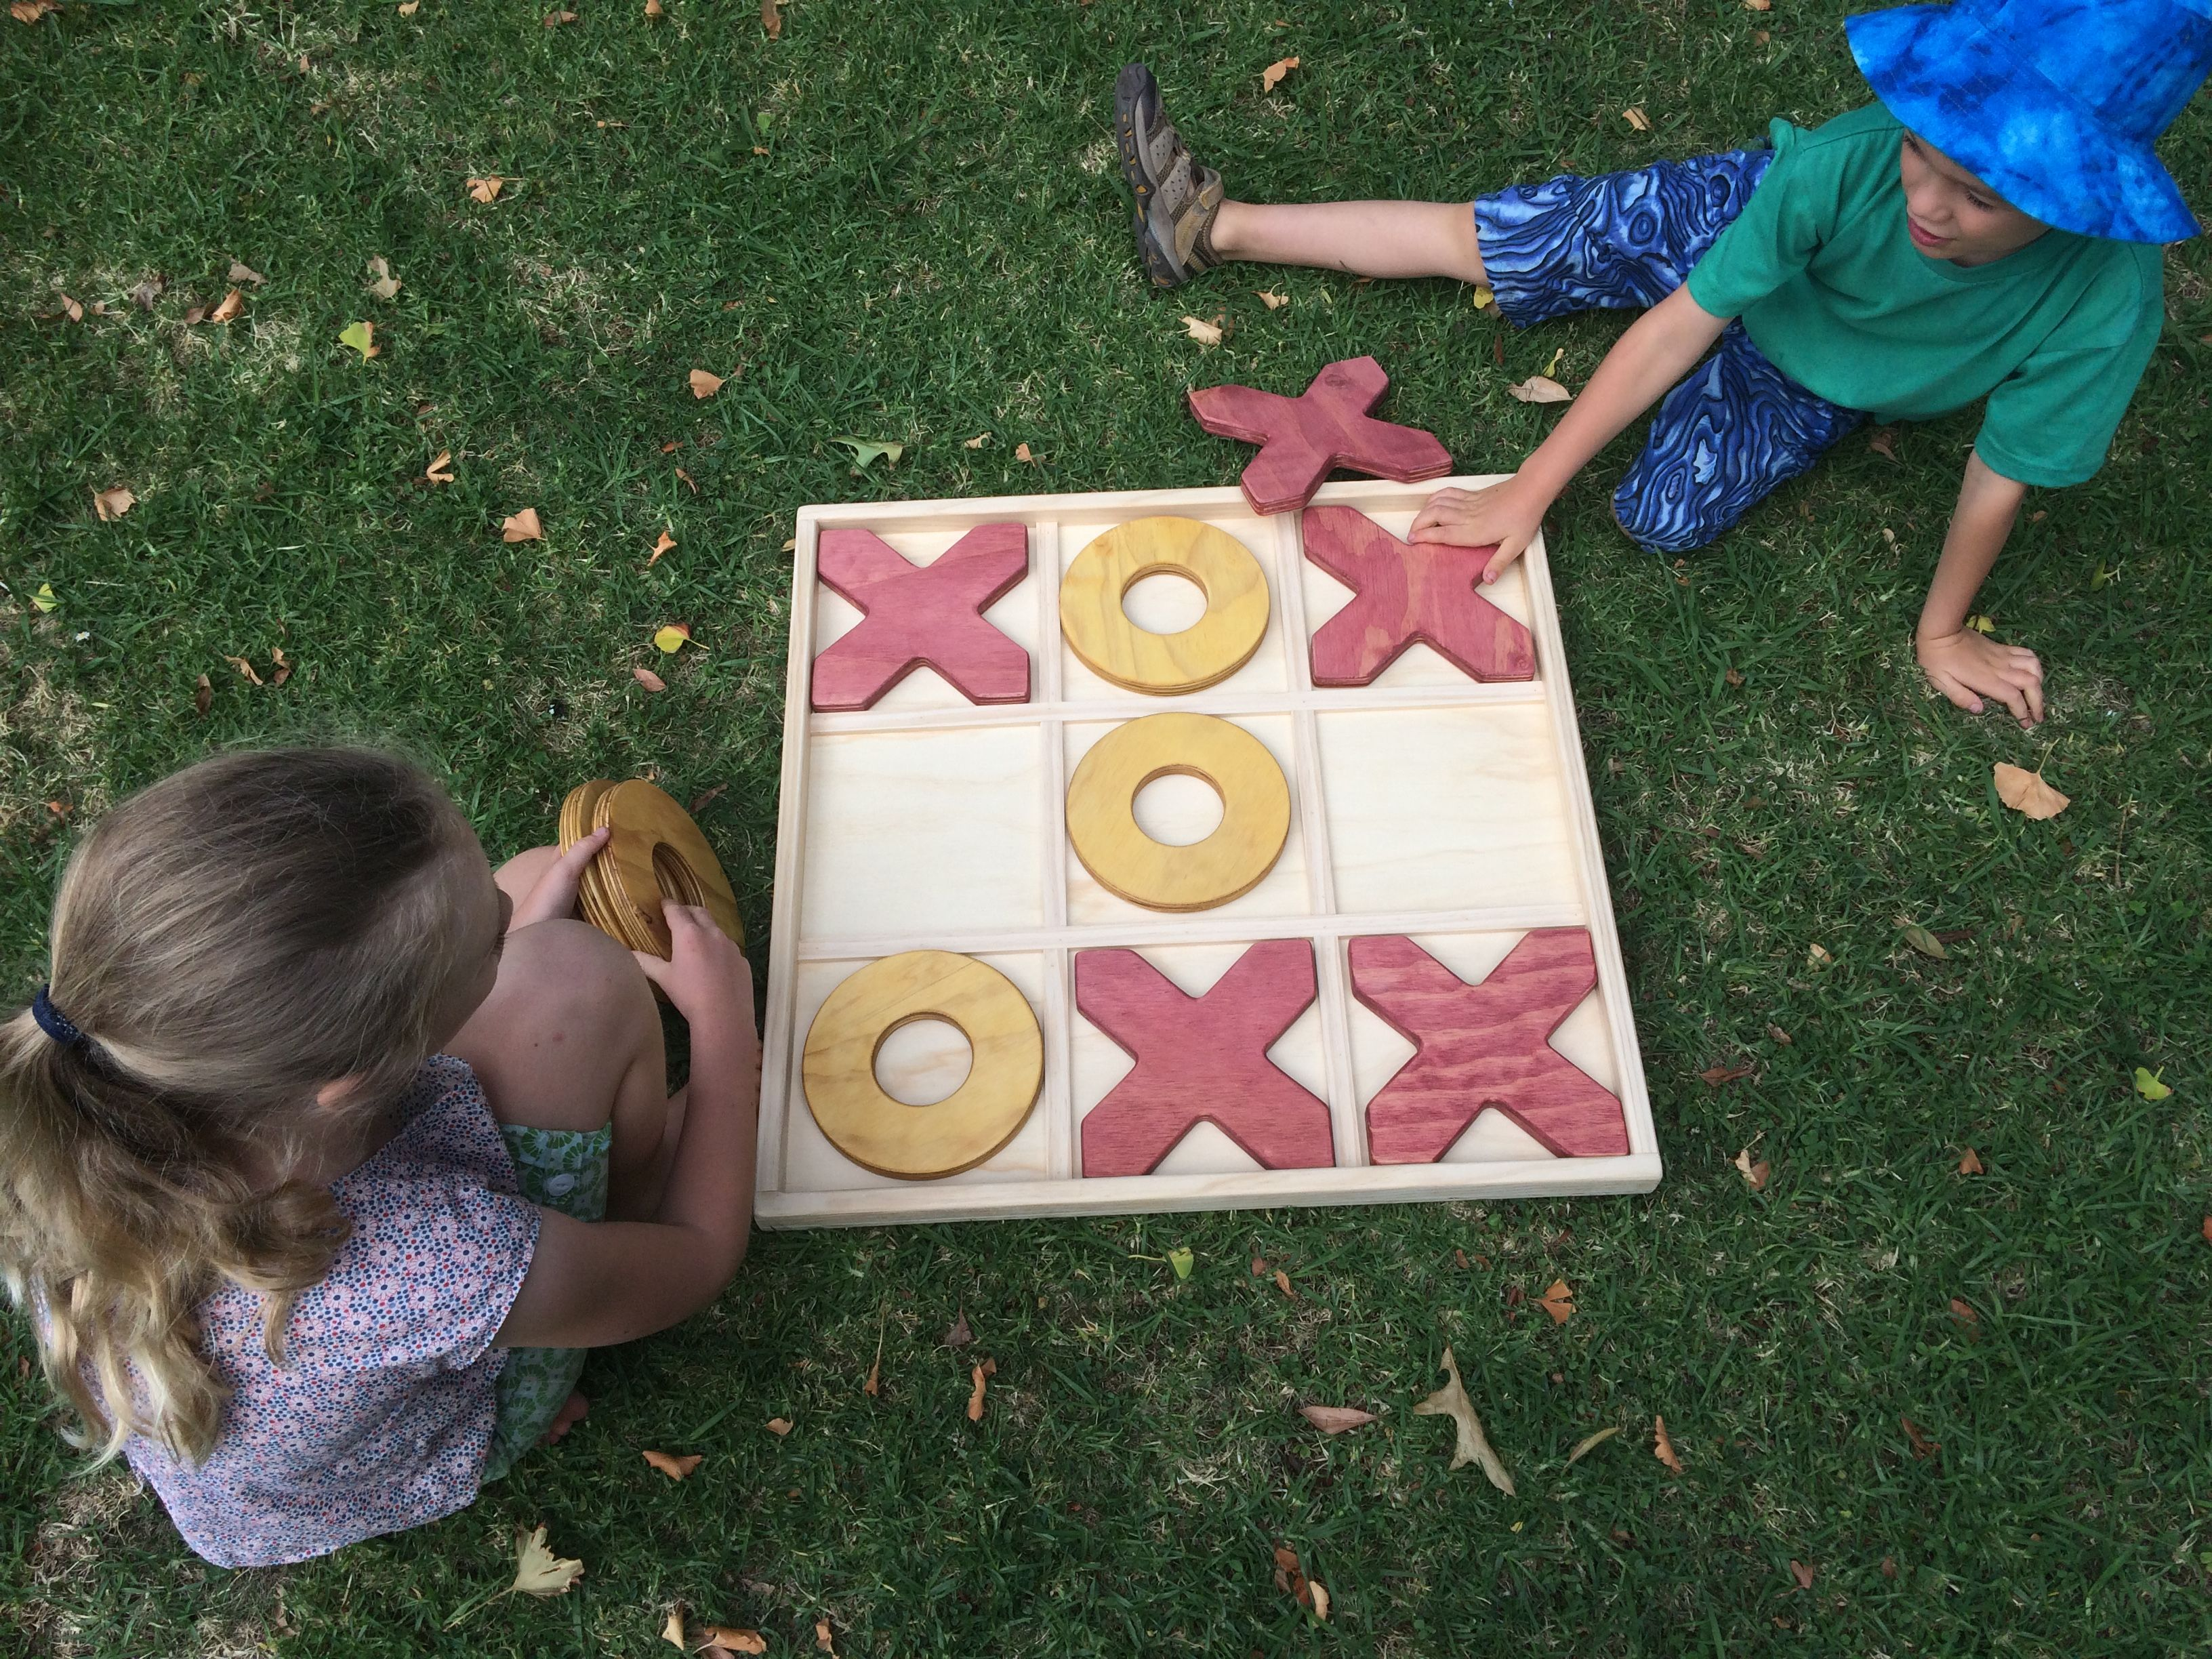 Wooden Games Hire For Weddings And Events Auckland Giant Connect 4 Jenga Quoitsthe Elves And The Woodbotherer Wooden Games Giant Games Traditional Games